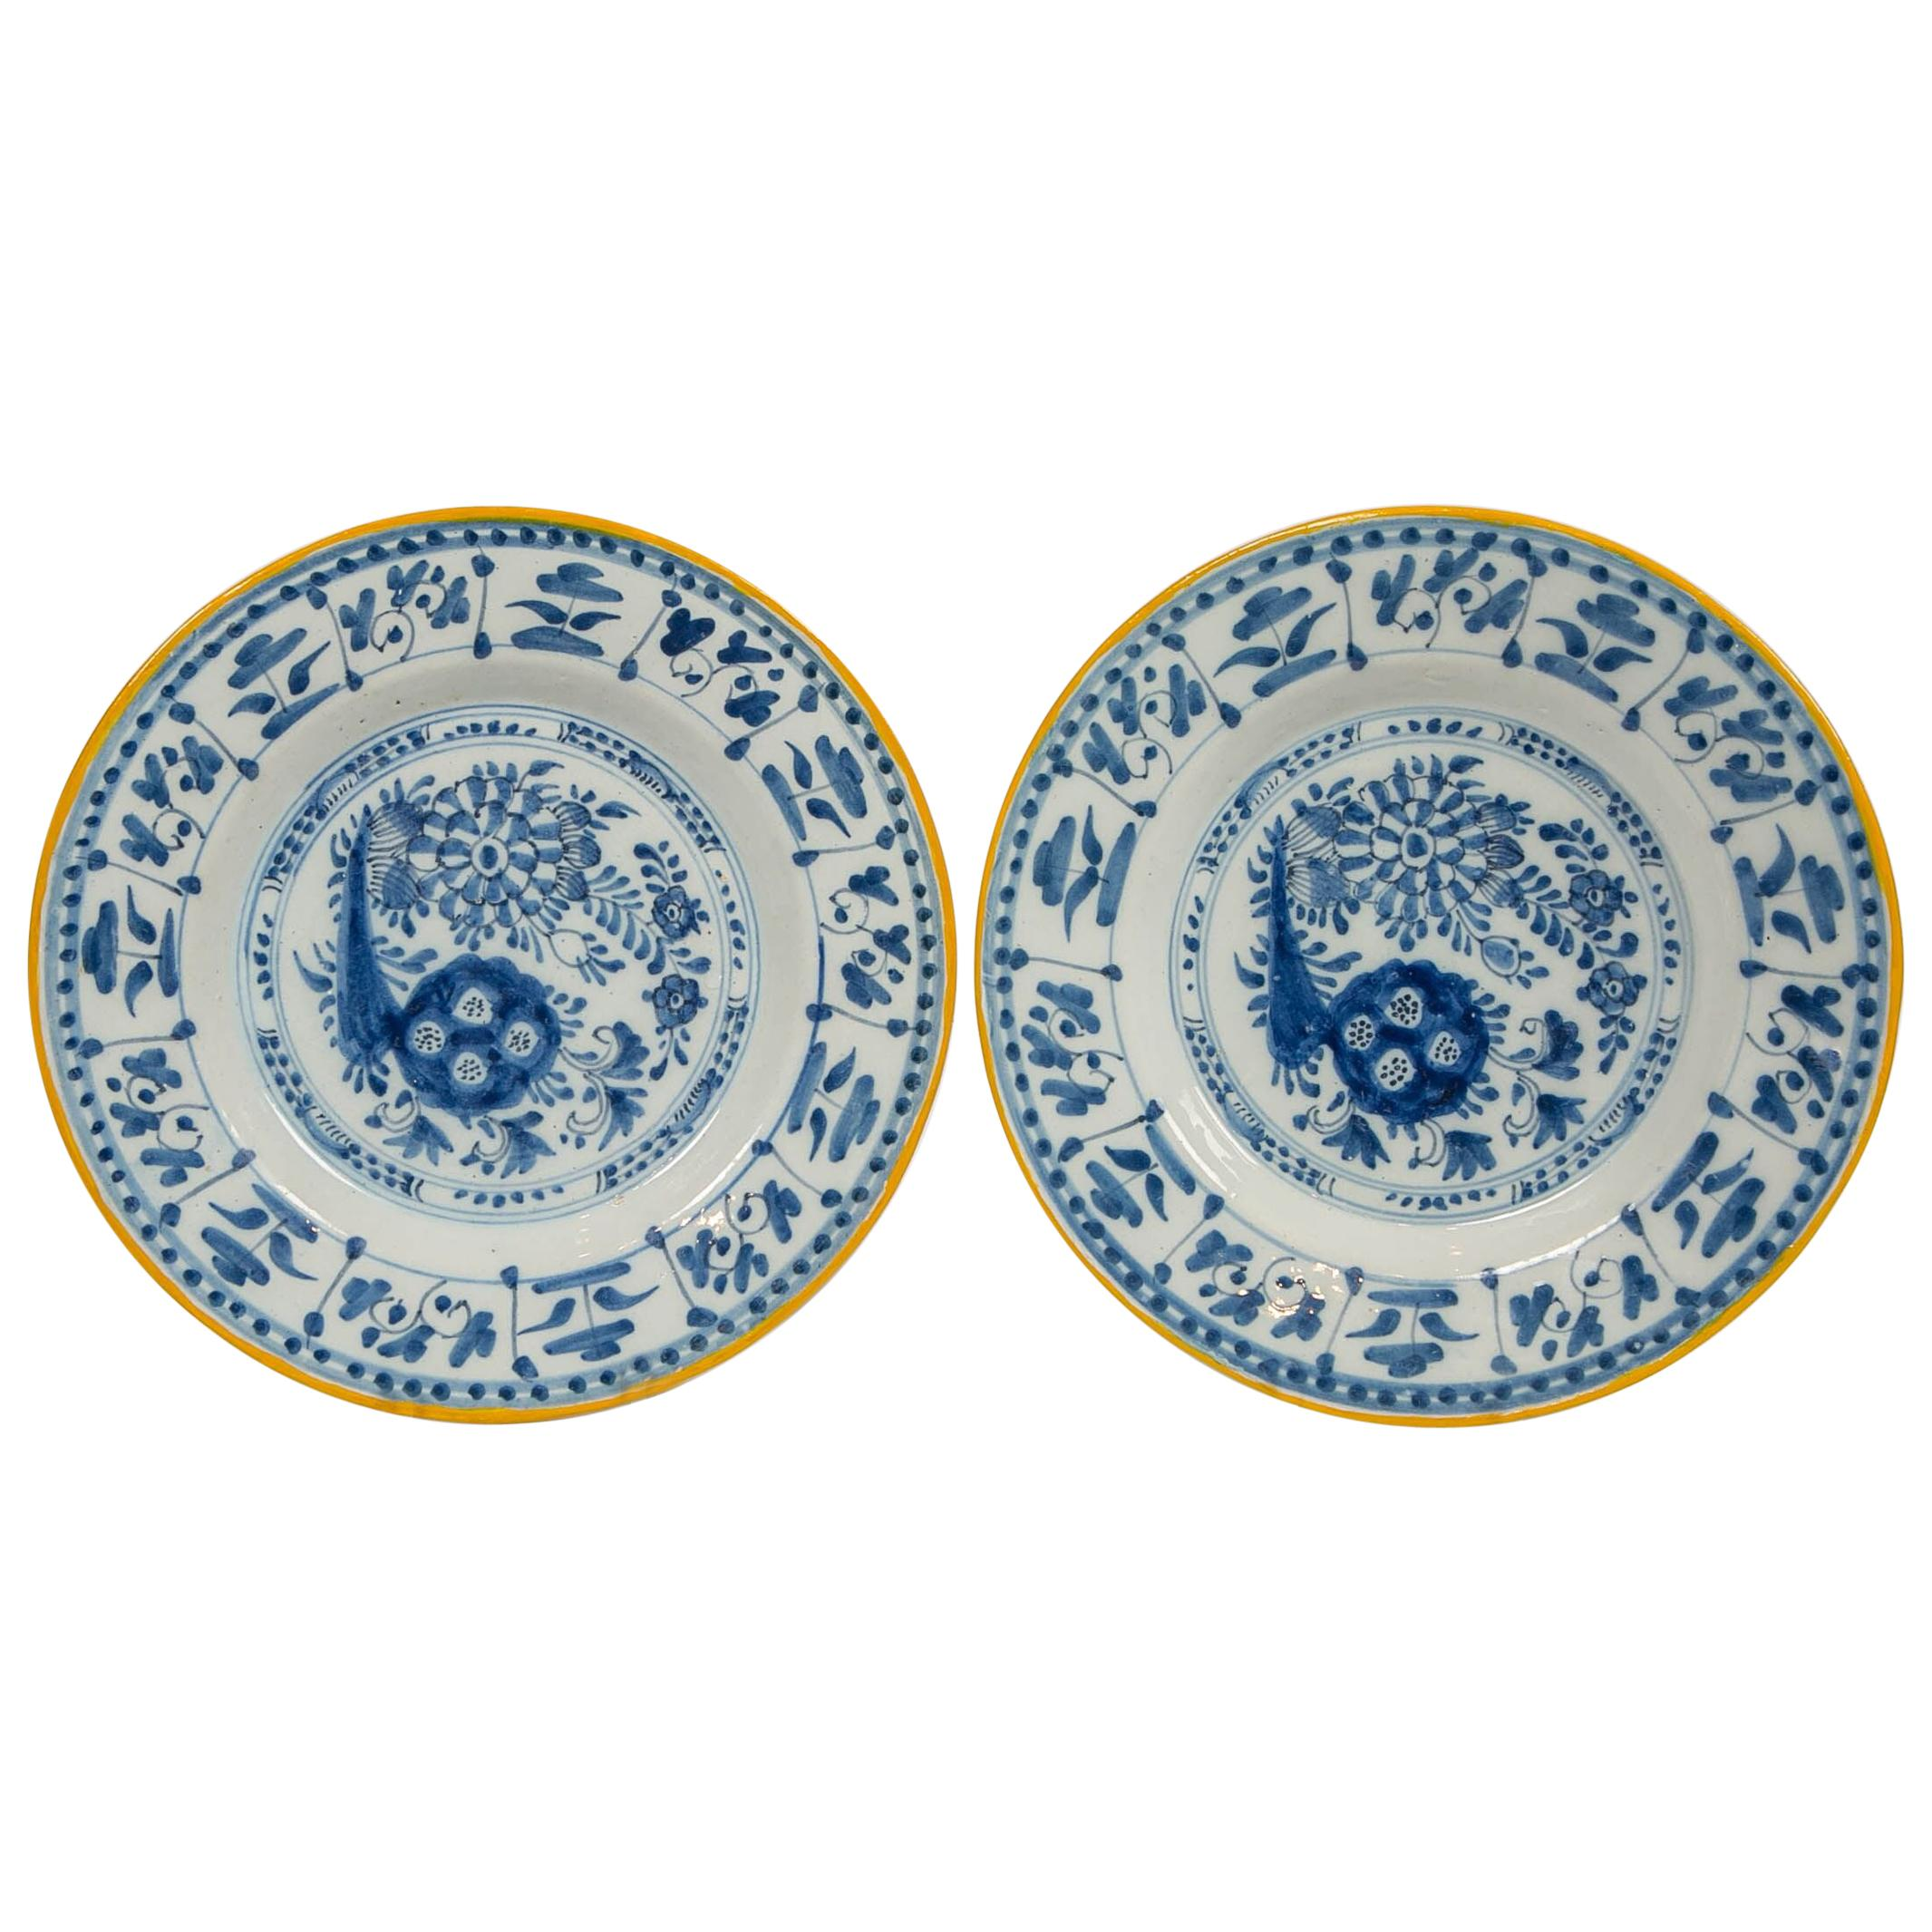 Pair of Antique Delft Blue and White Dishes Hand Painted Made Netherlands